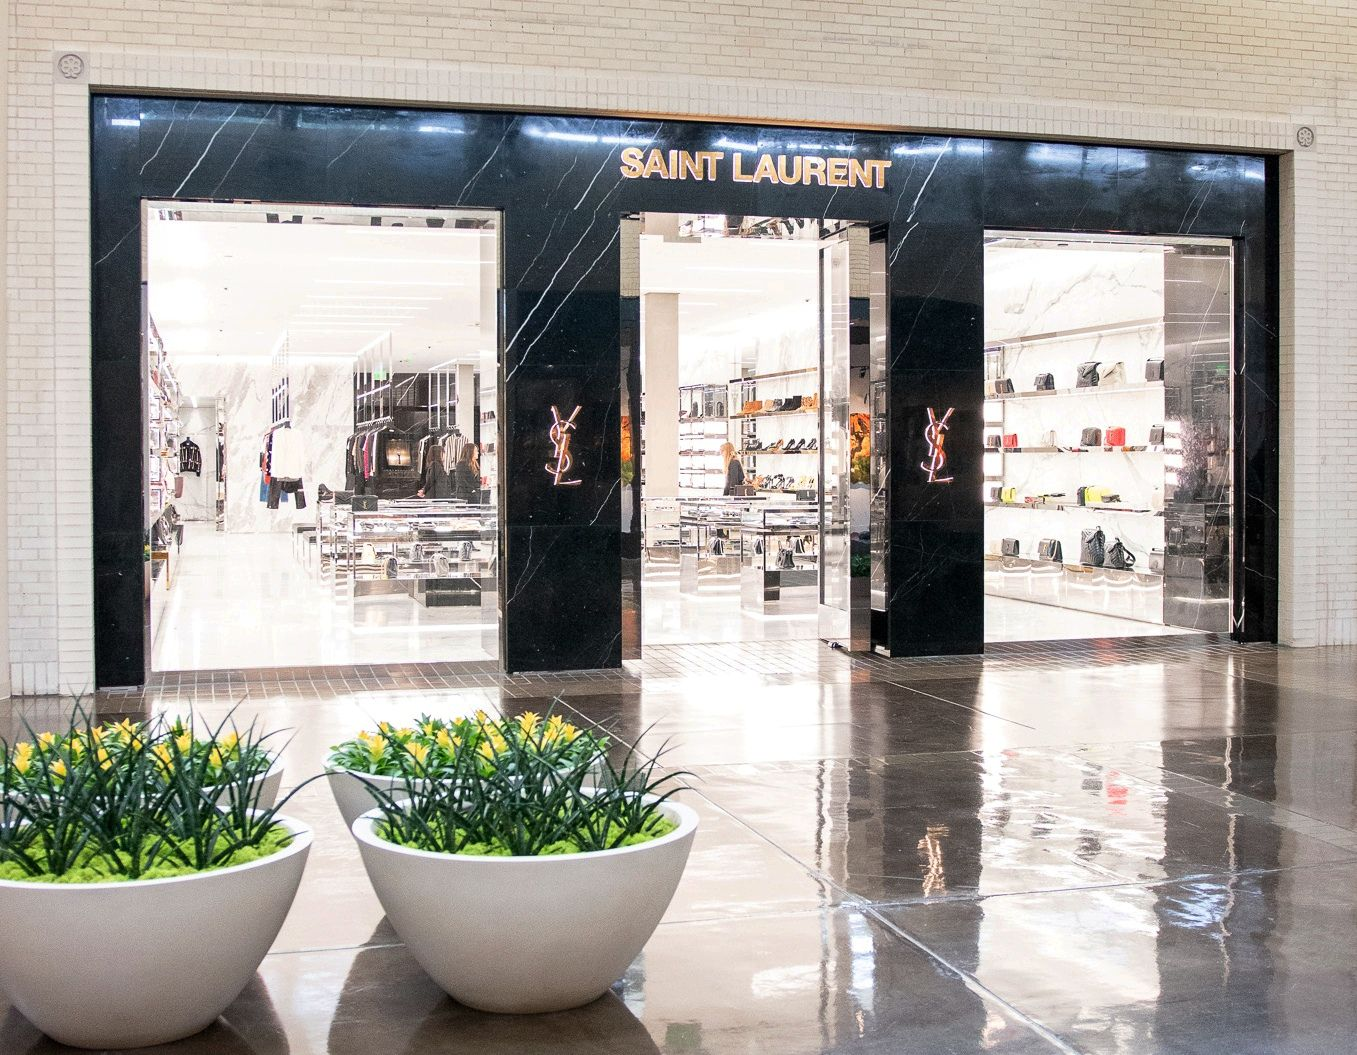 Saint Laurent opened in June 2019 at NorthPark Center in Dallas.